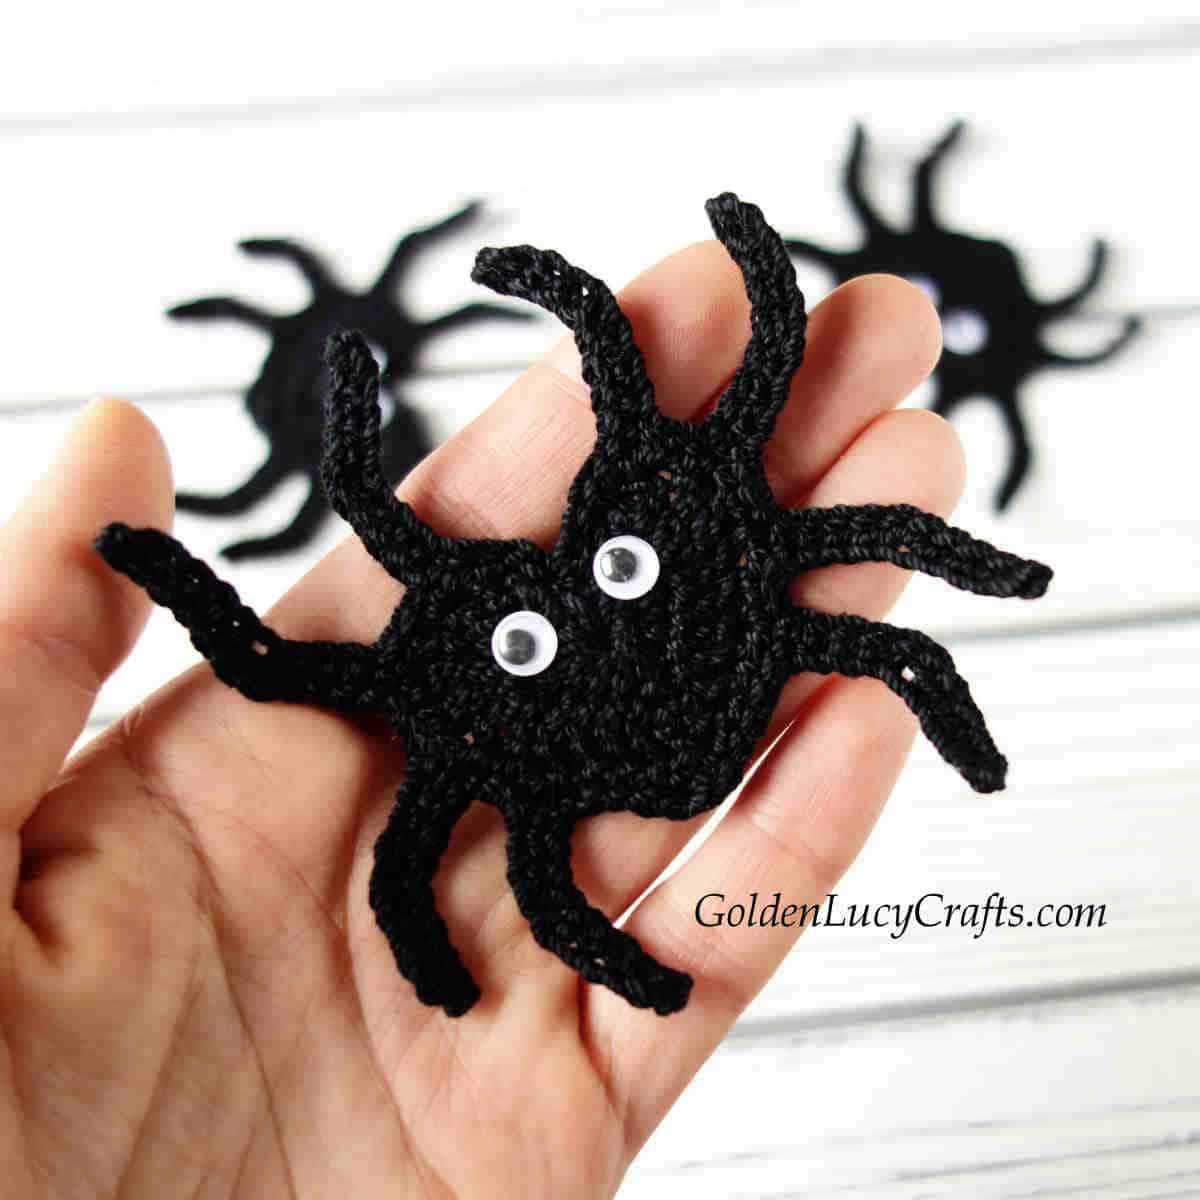 Crocheted black spider applique in the palm of a hand.